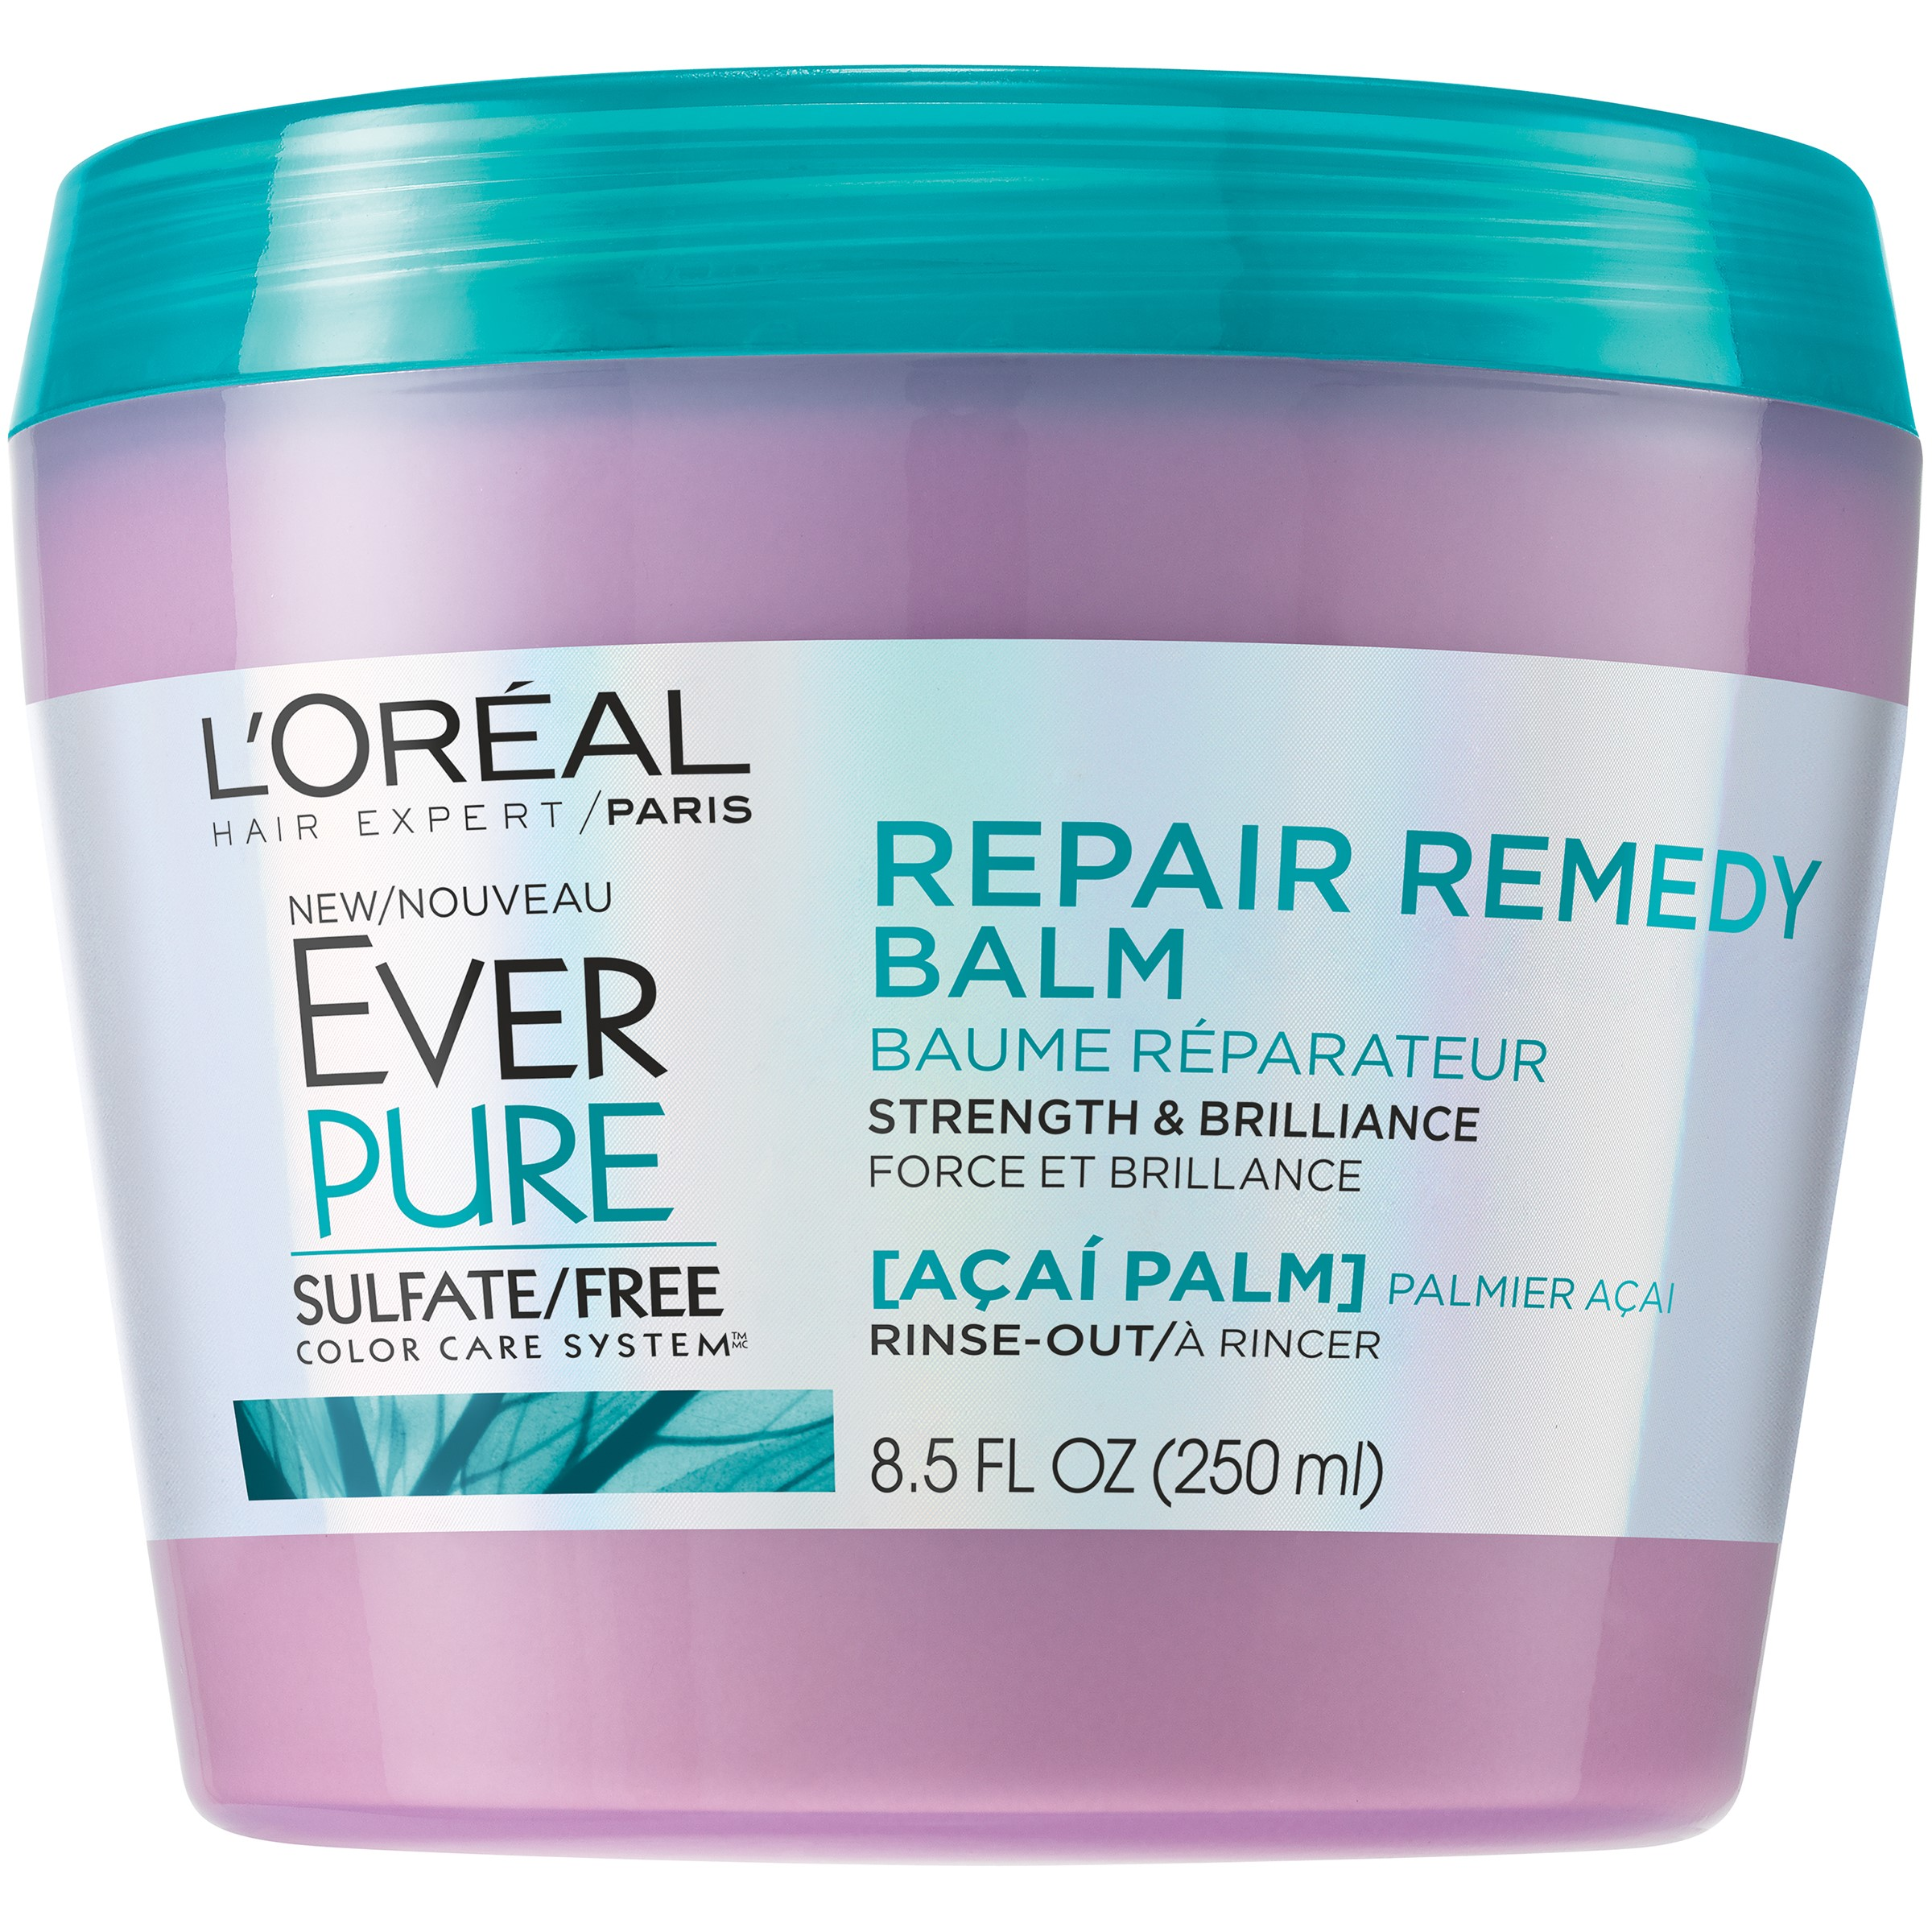 L'Oreal Paris EverPure Repair Remedy Balm, Acai Palm, 8.5 Fl Oz